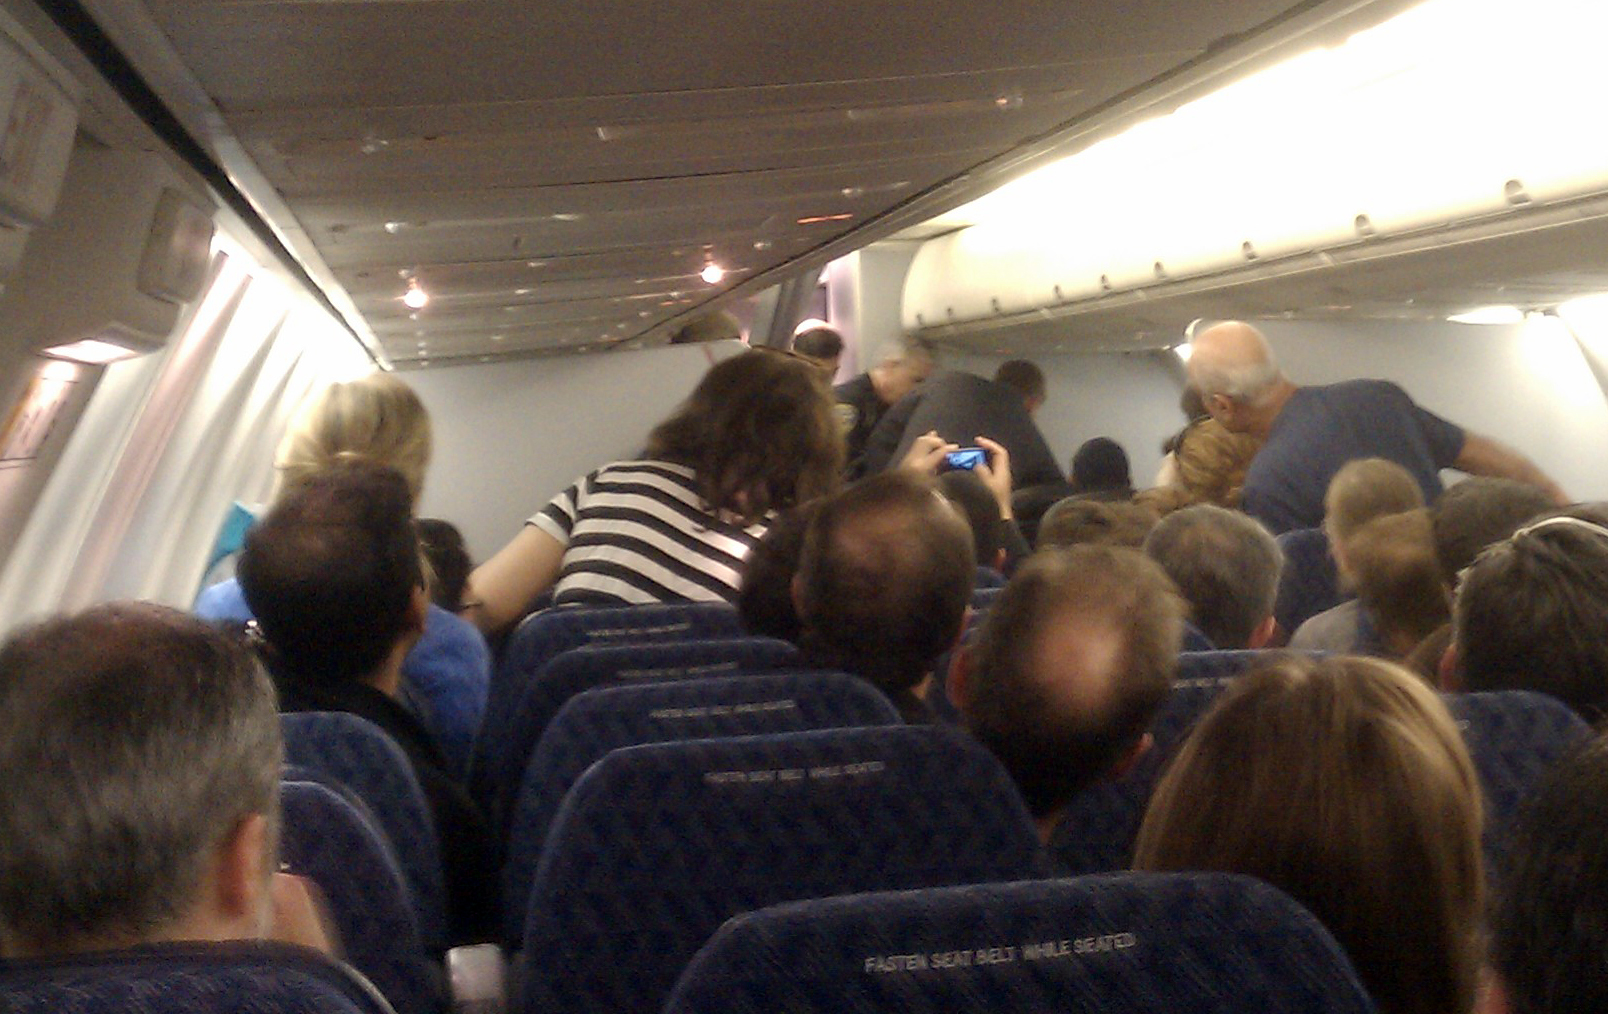 No bail for man who tried to rush plane cockpit - CBS News |American Airlines Flight 11 Passengers